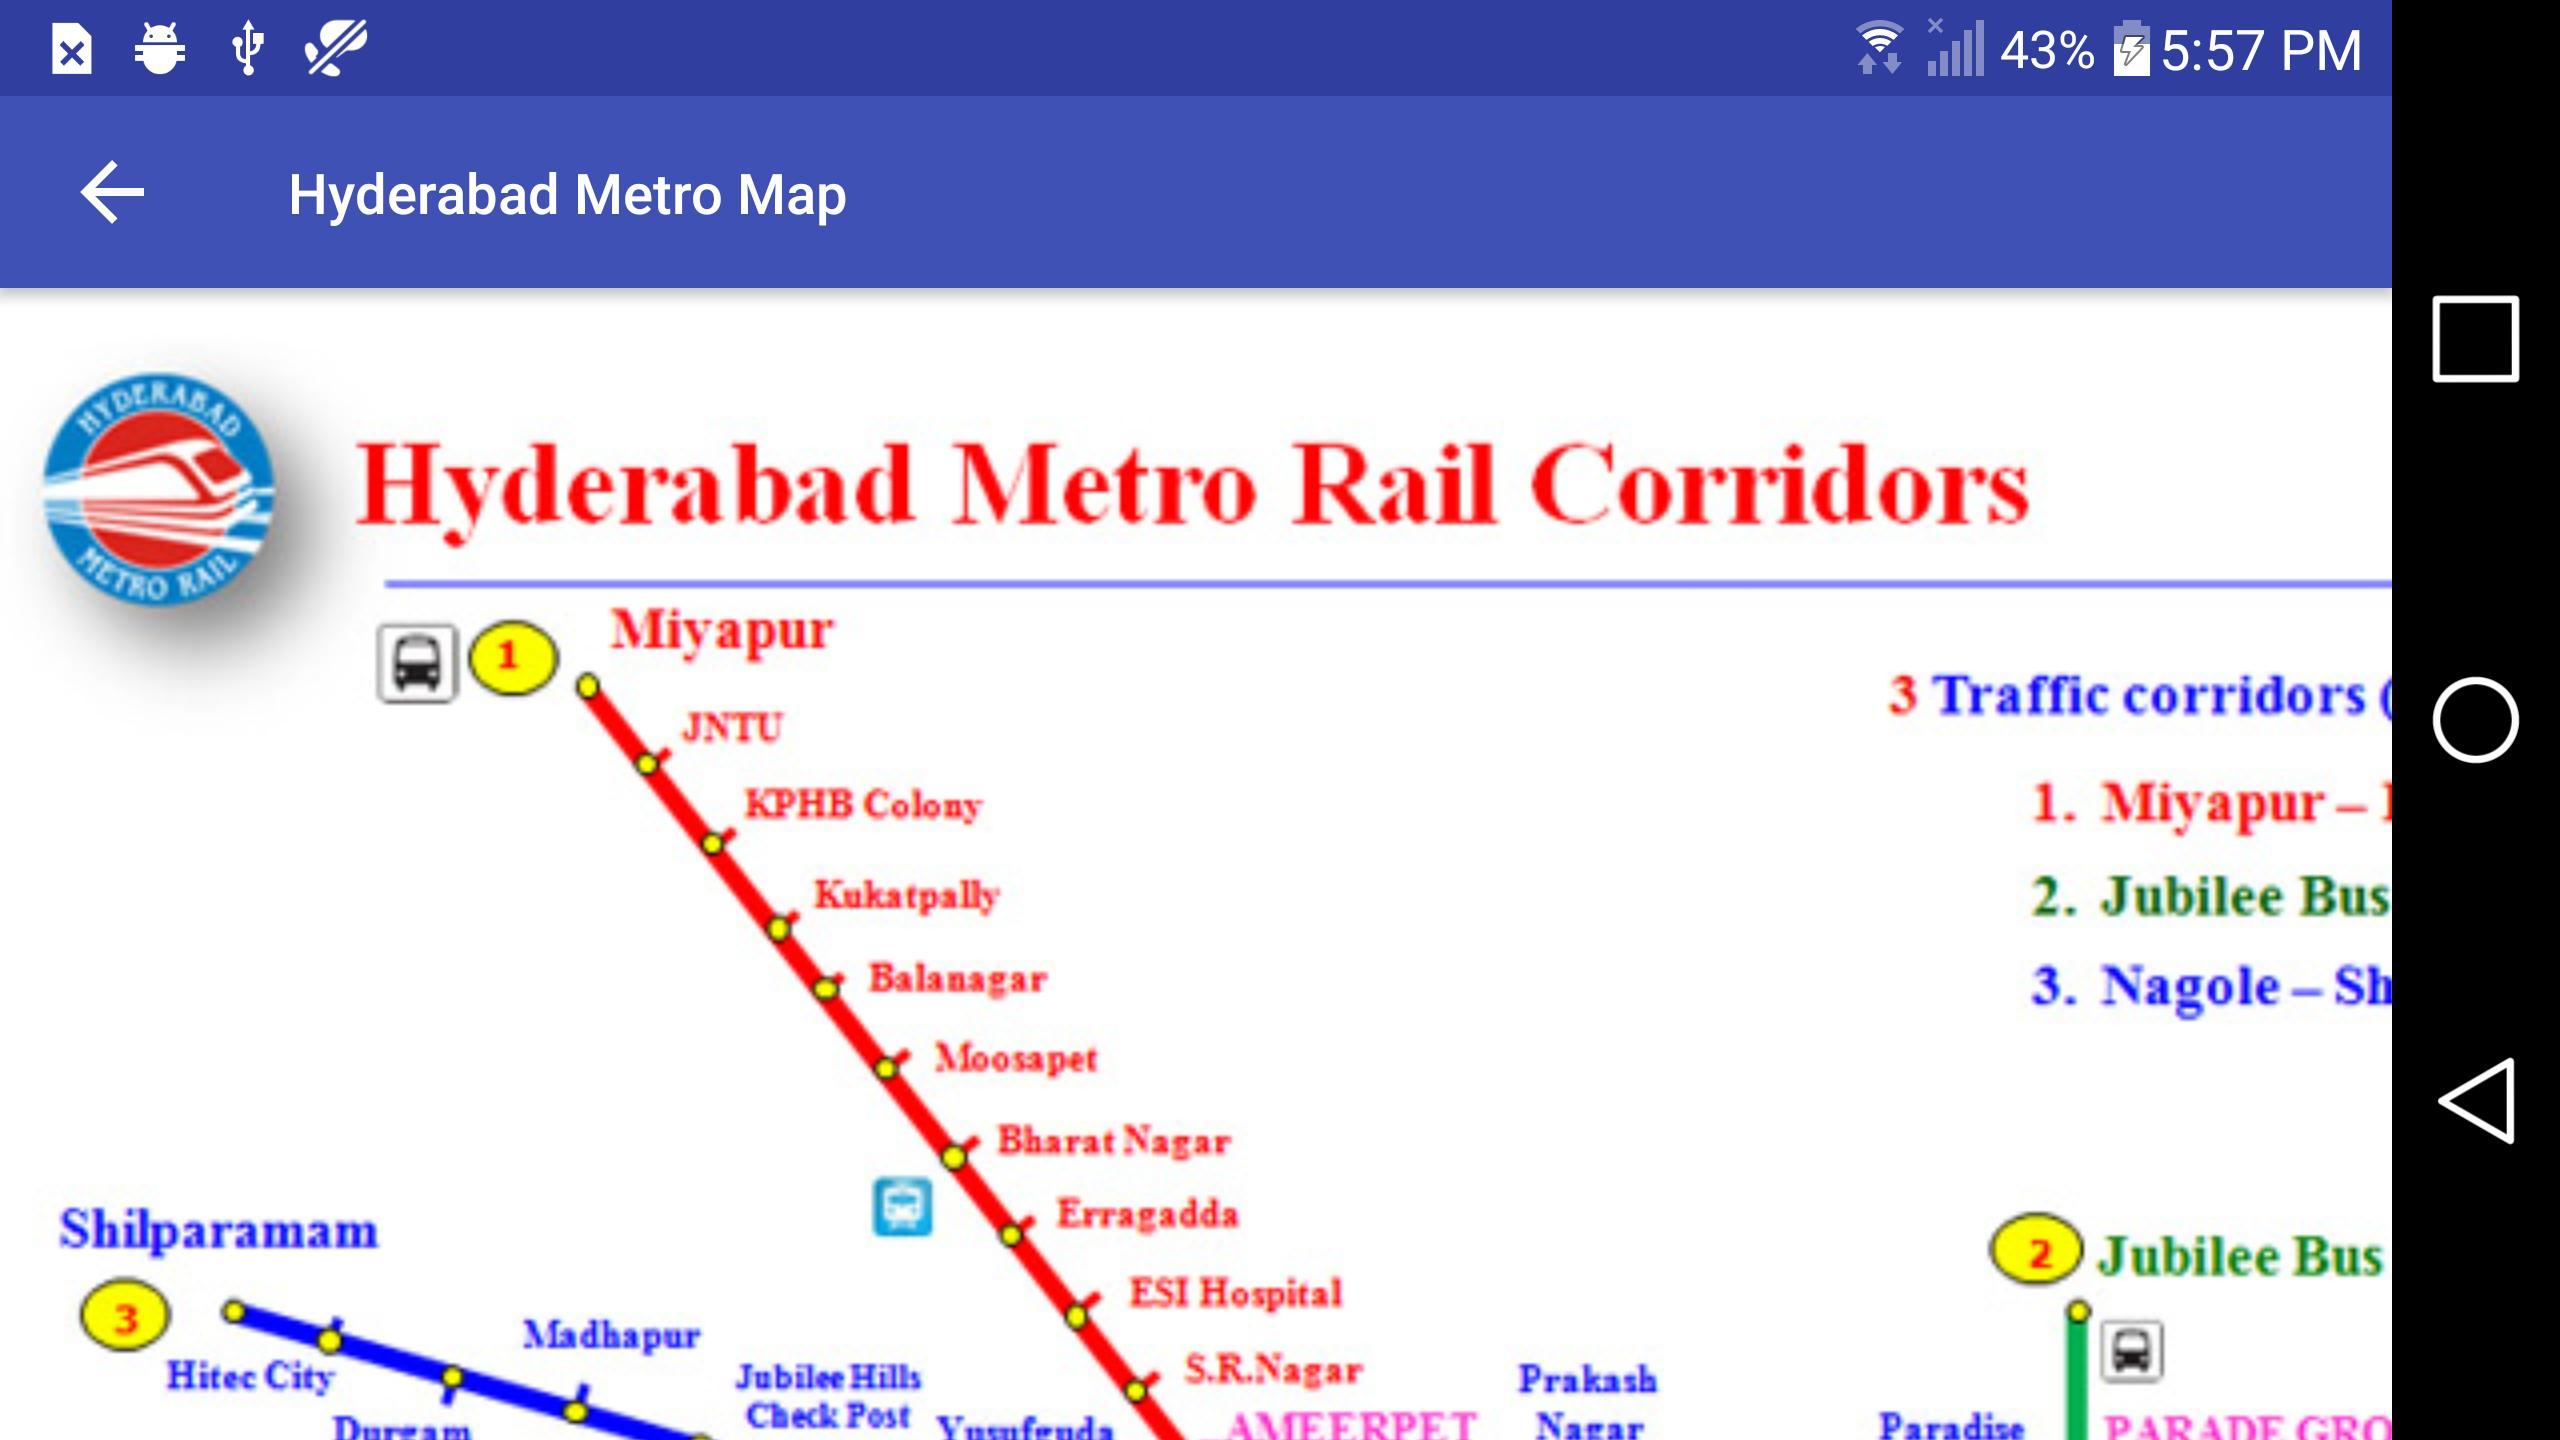 Hyderabad Metro Rail Map for Android - APK Download on